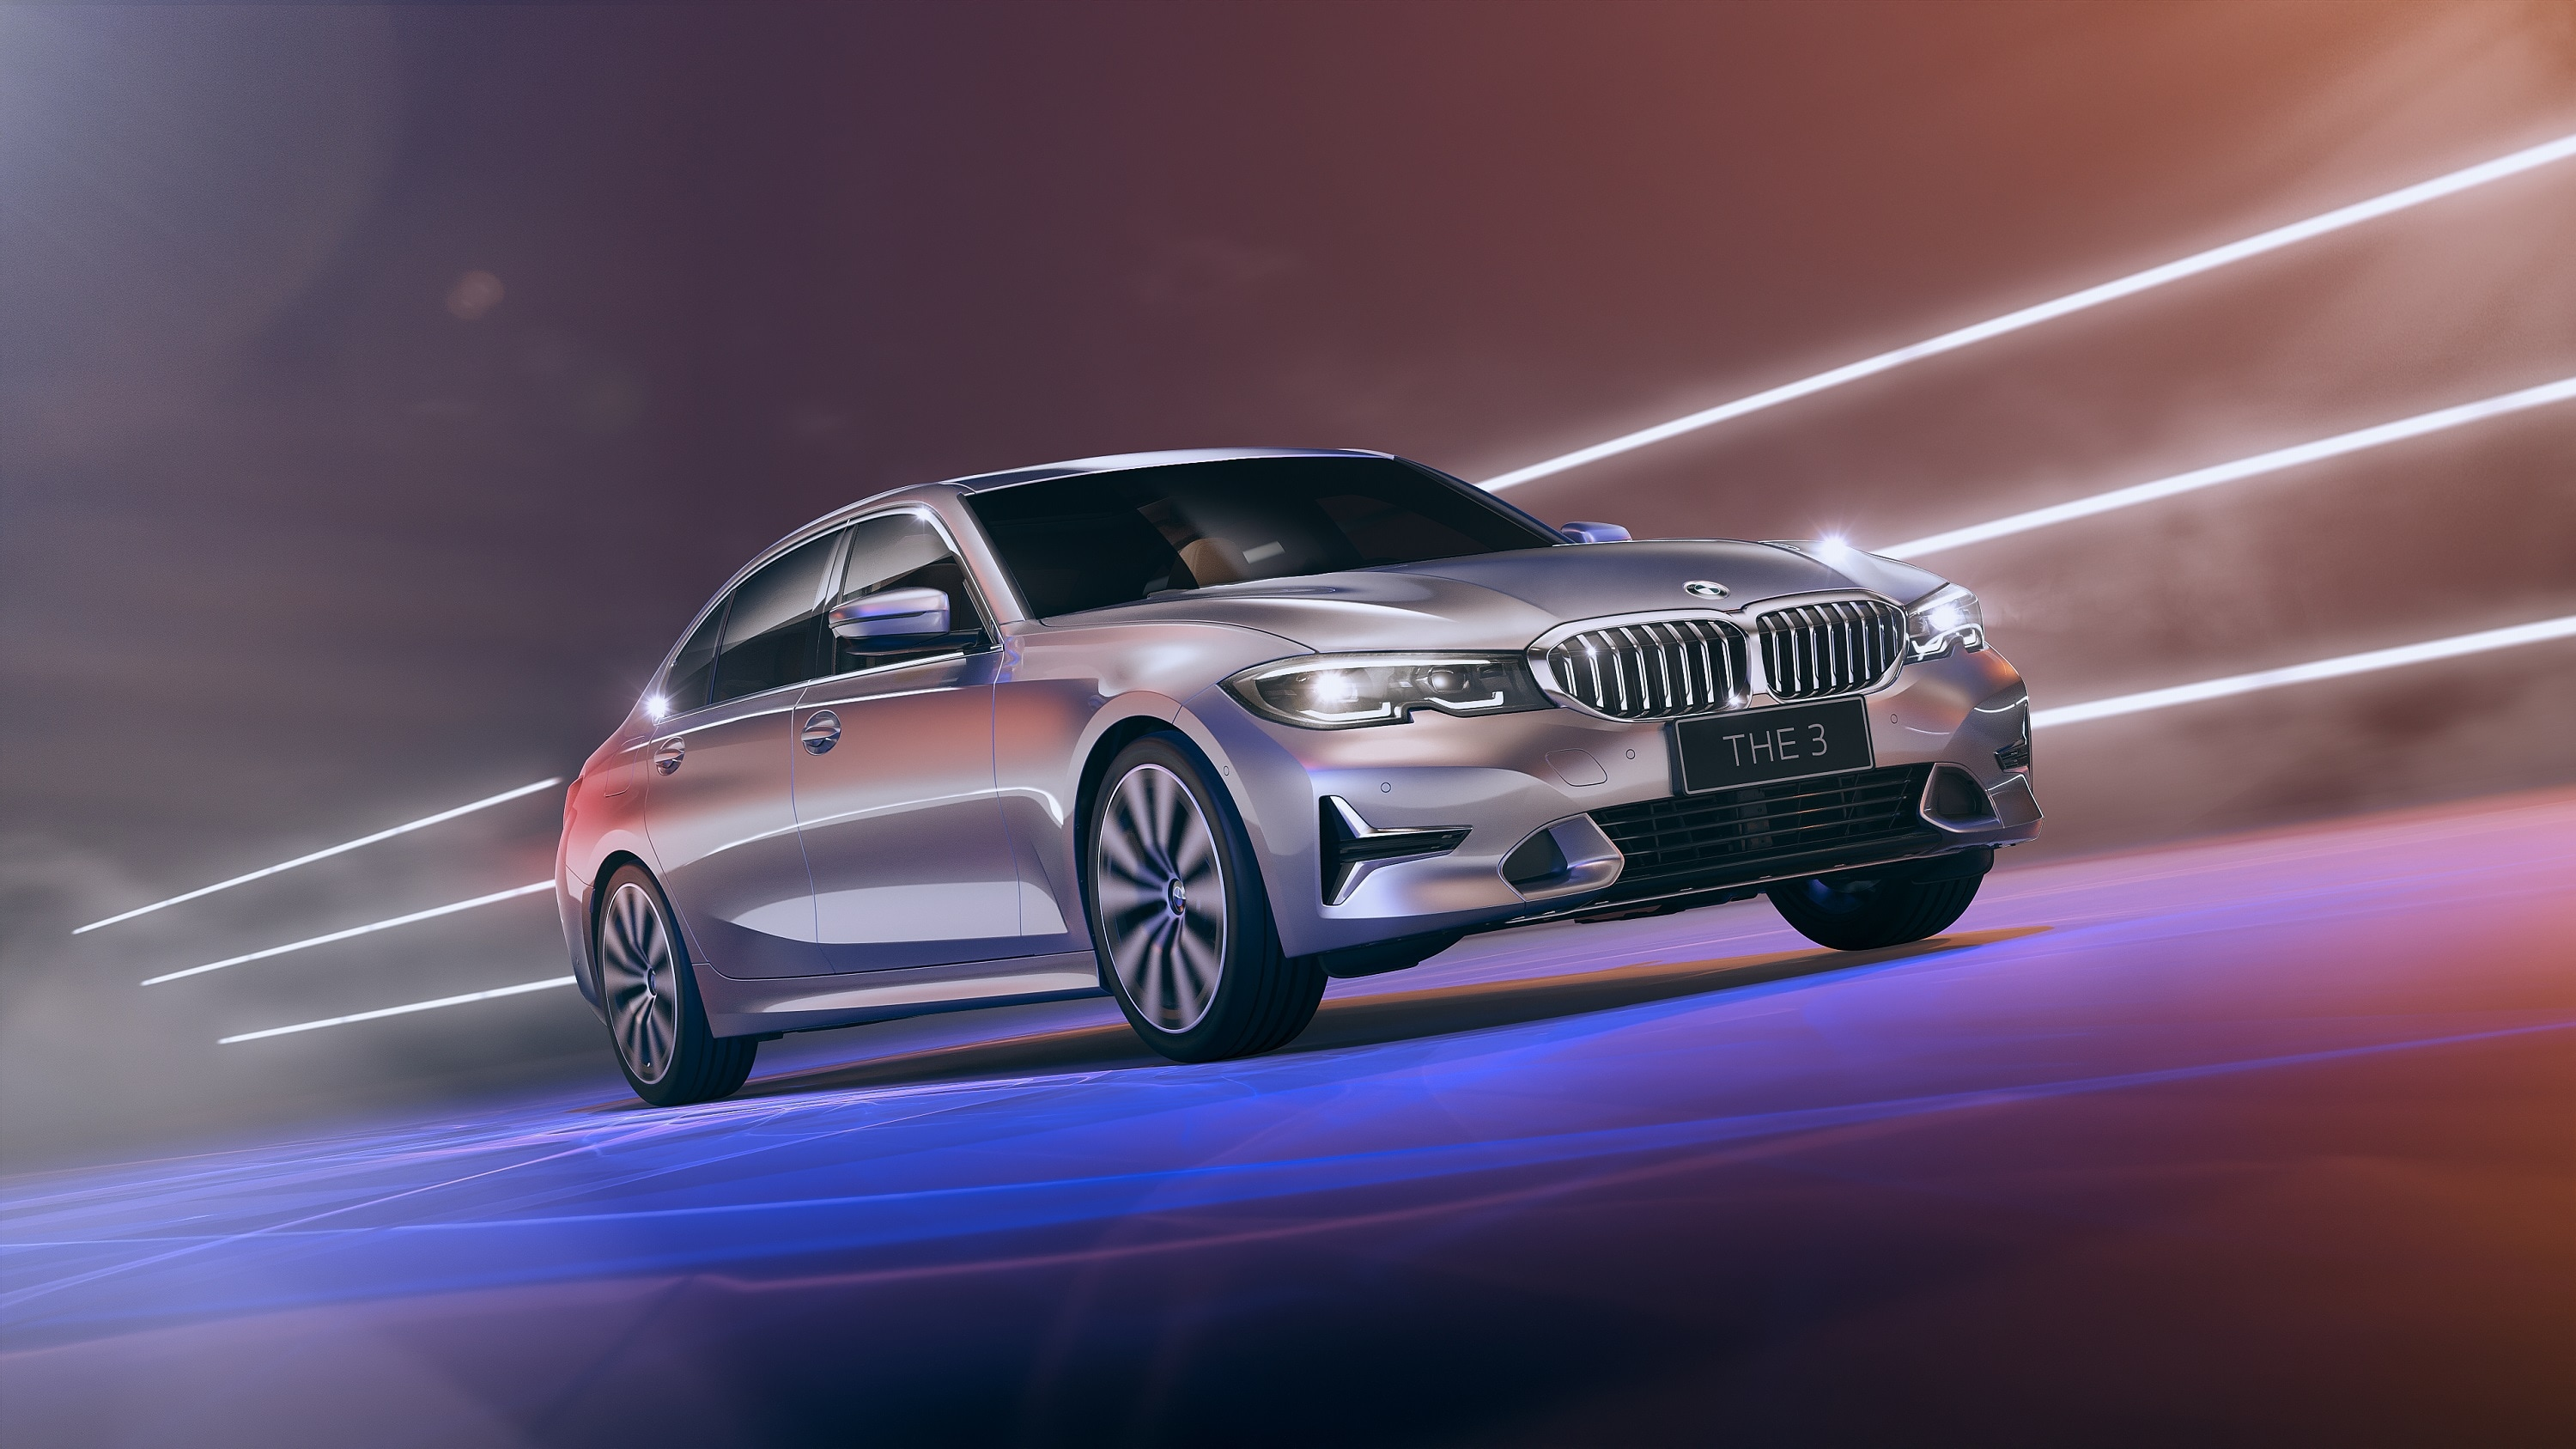 BMW 3 Series Gran Limousine seeks to continue offering an engaging drive but with more luxury on offer for passengers at the rear.